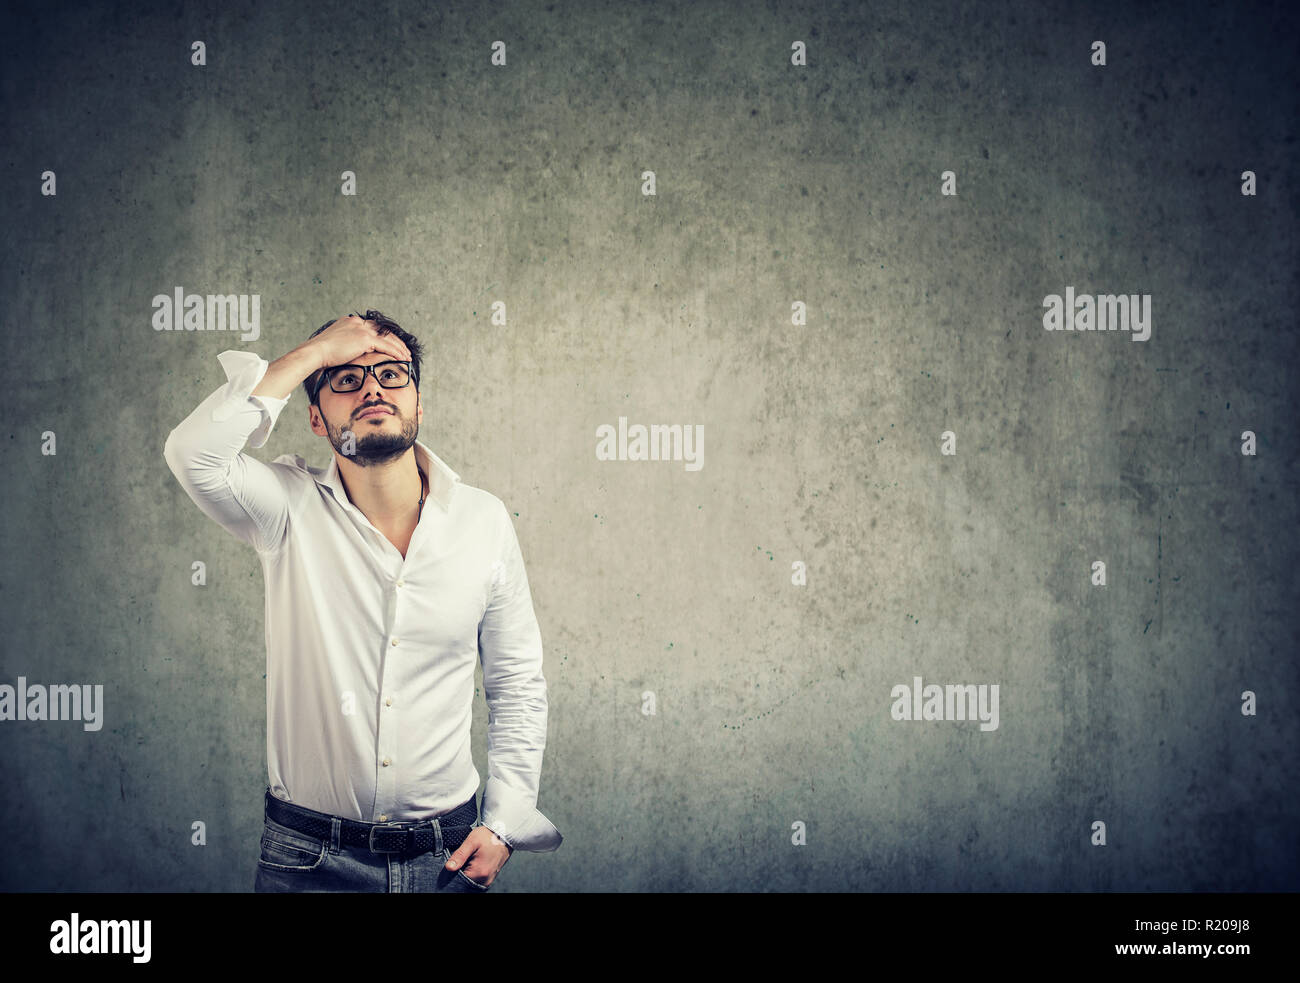 Young casual man in white shirt and glasses having problems and looking up in challenge on gray wall background - Stock Image